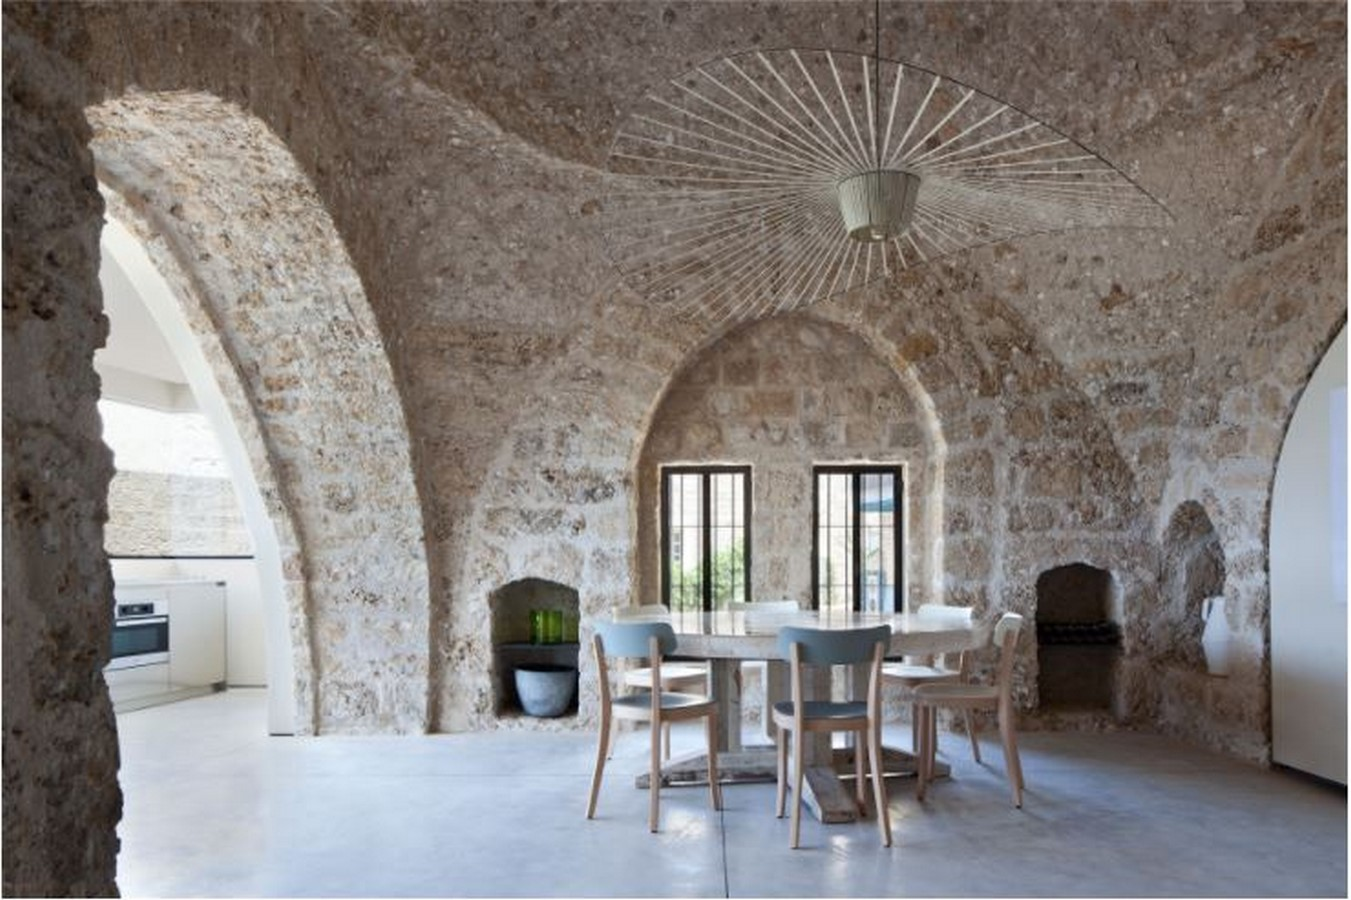 15 Historical Buildings With Modern Interiors - Sheet50